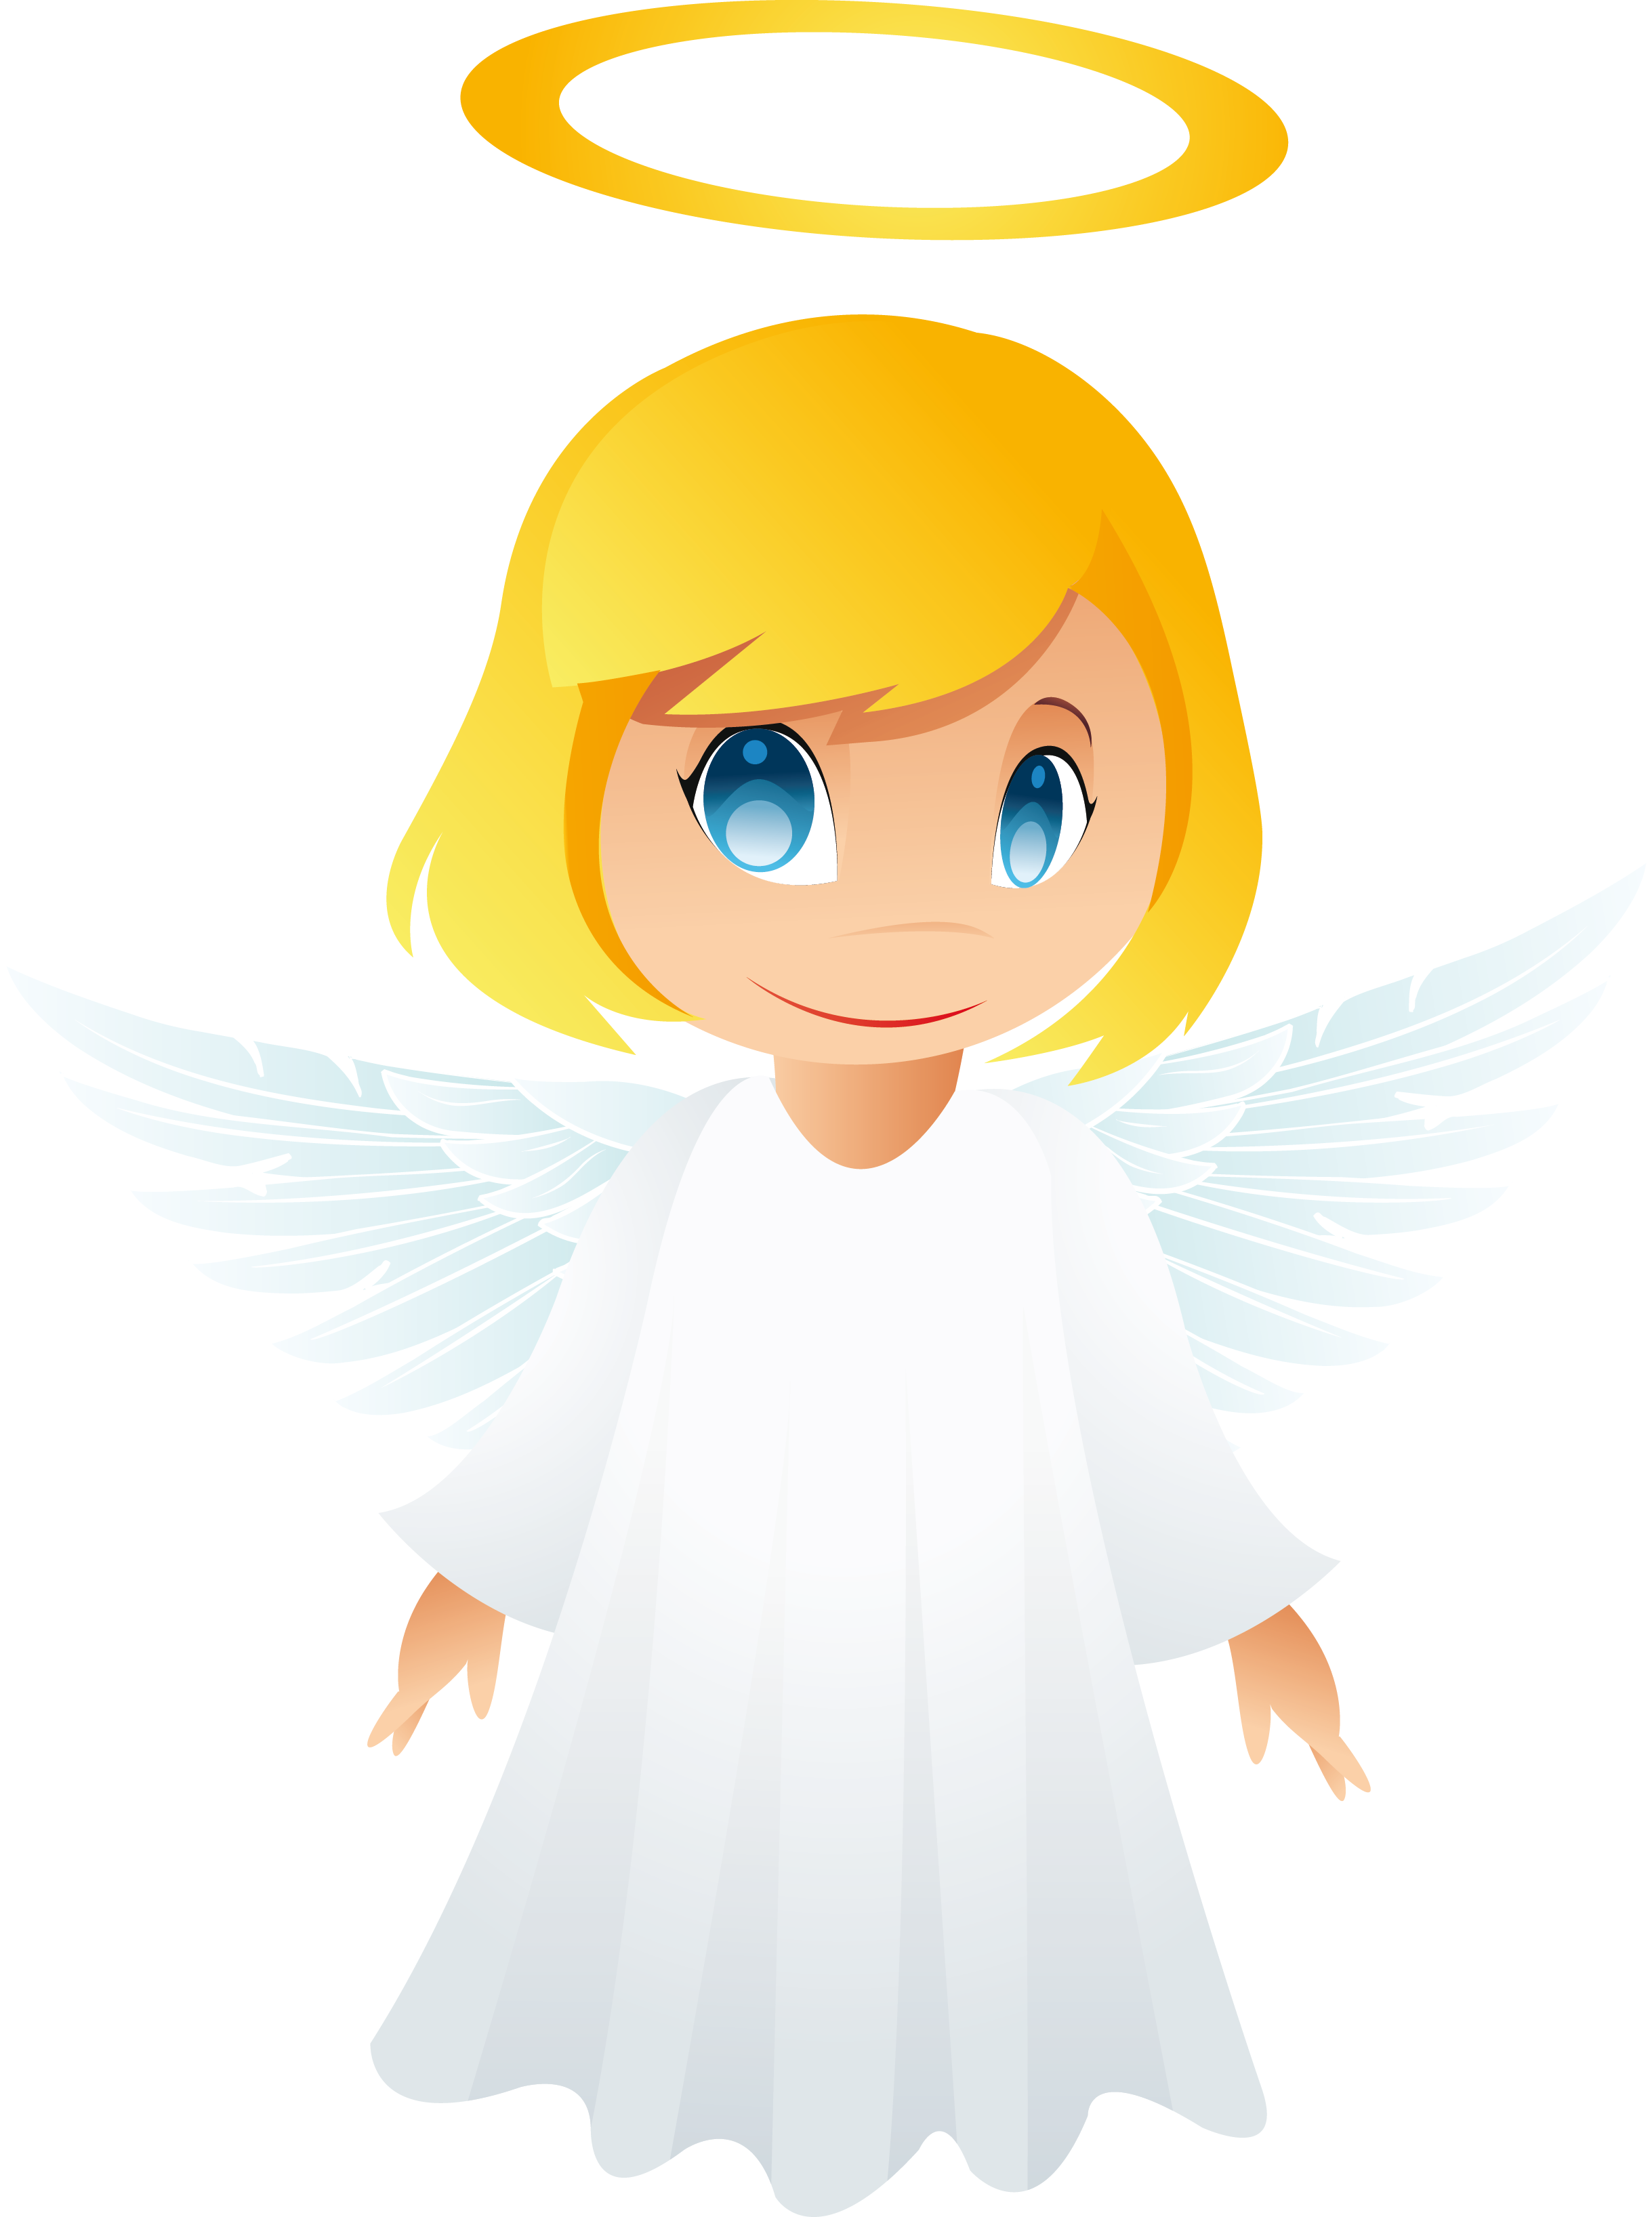 angel clipart free graphics of cherubs and angels the cliparts rh pinterest com angels clipart black and white angels clip art